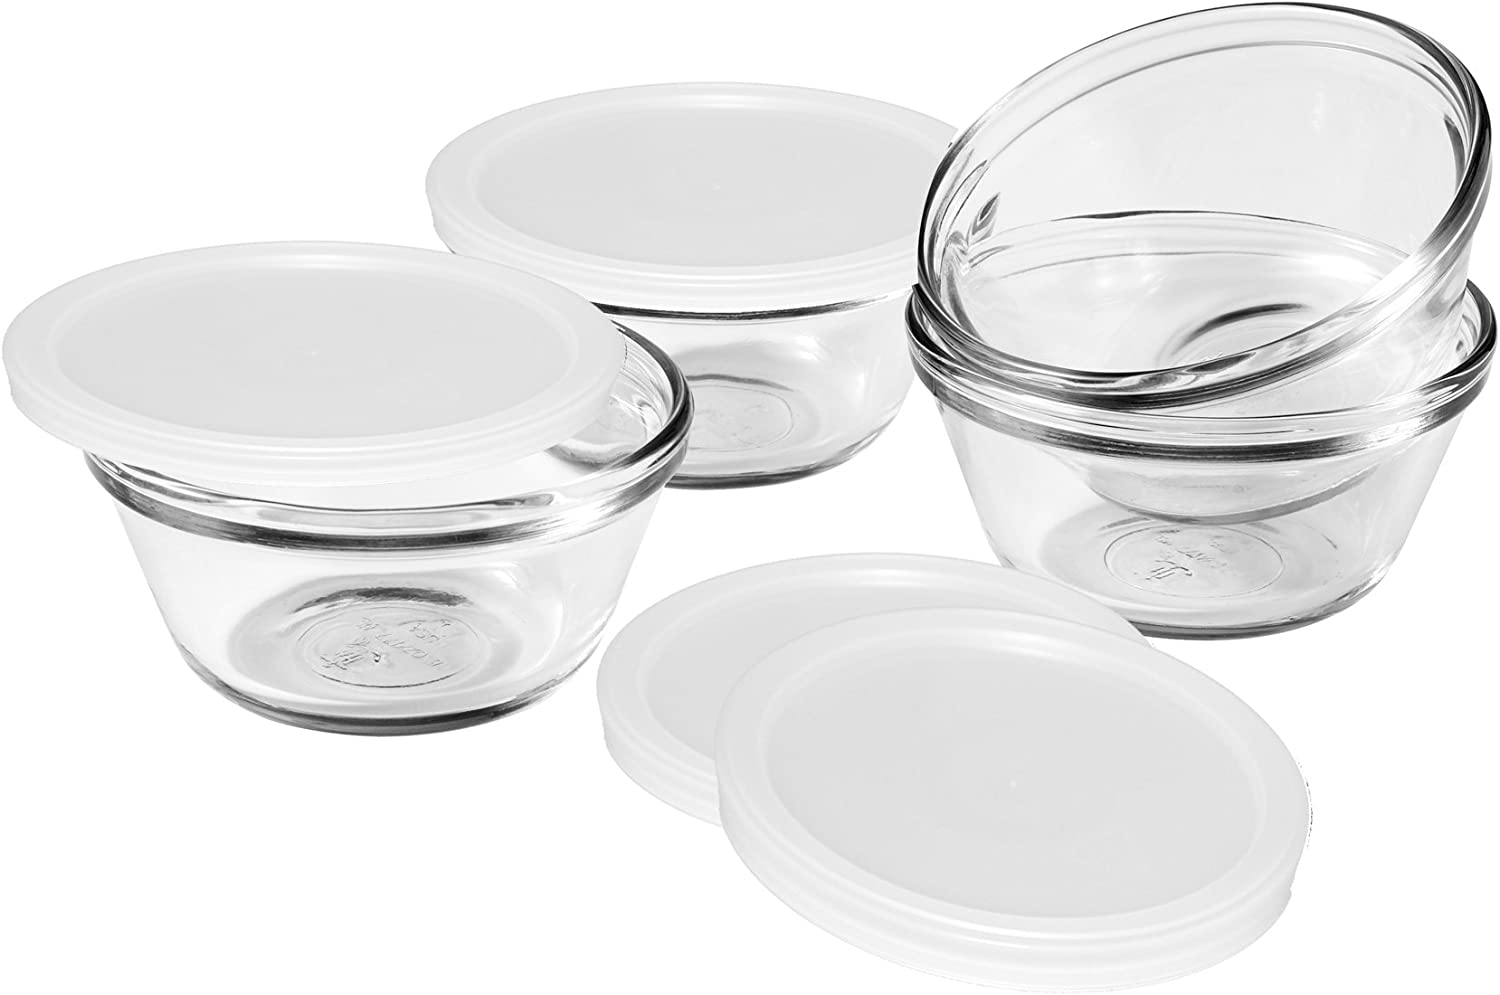 Anchor Hocking 6-Ounce Custard Cups with Lids, Set of 4